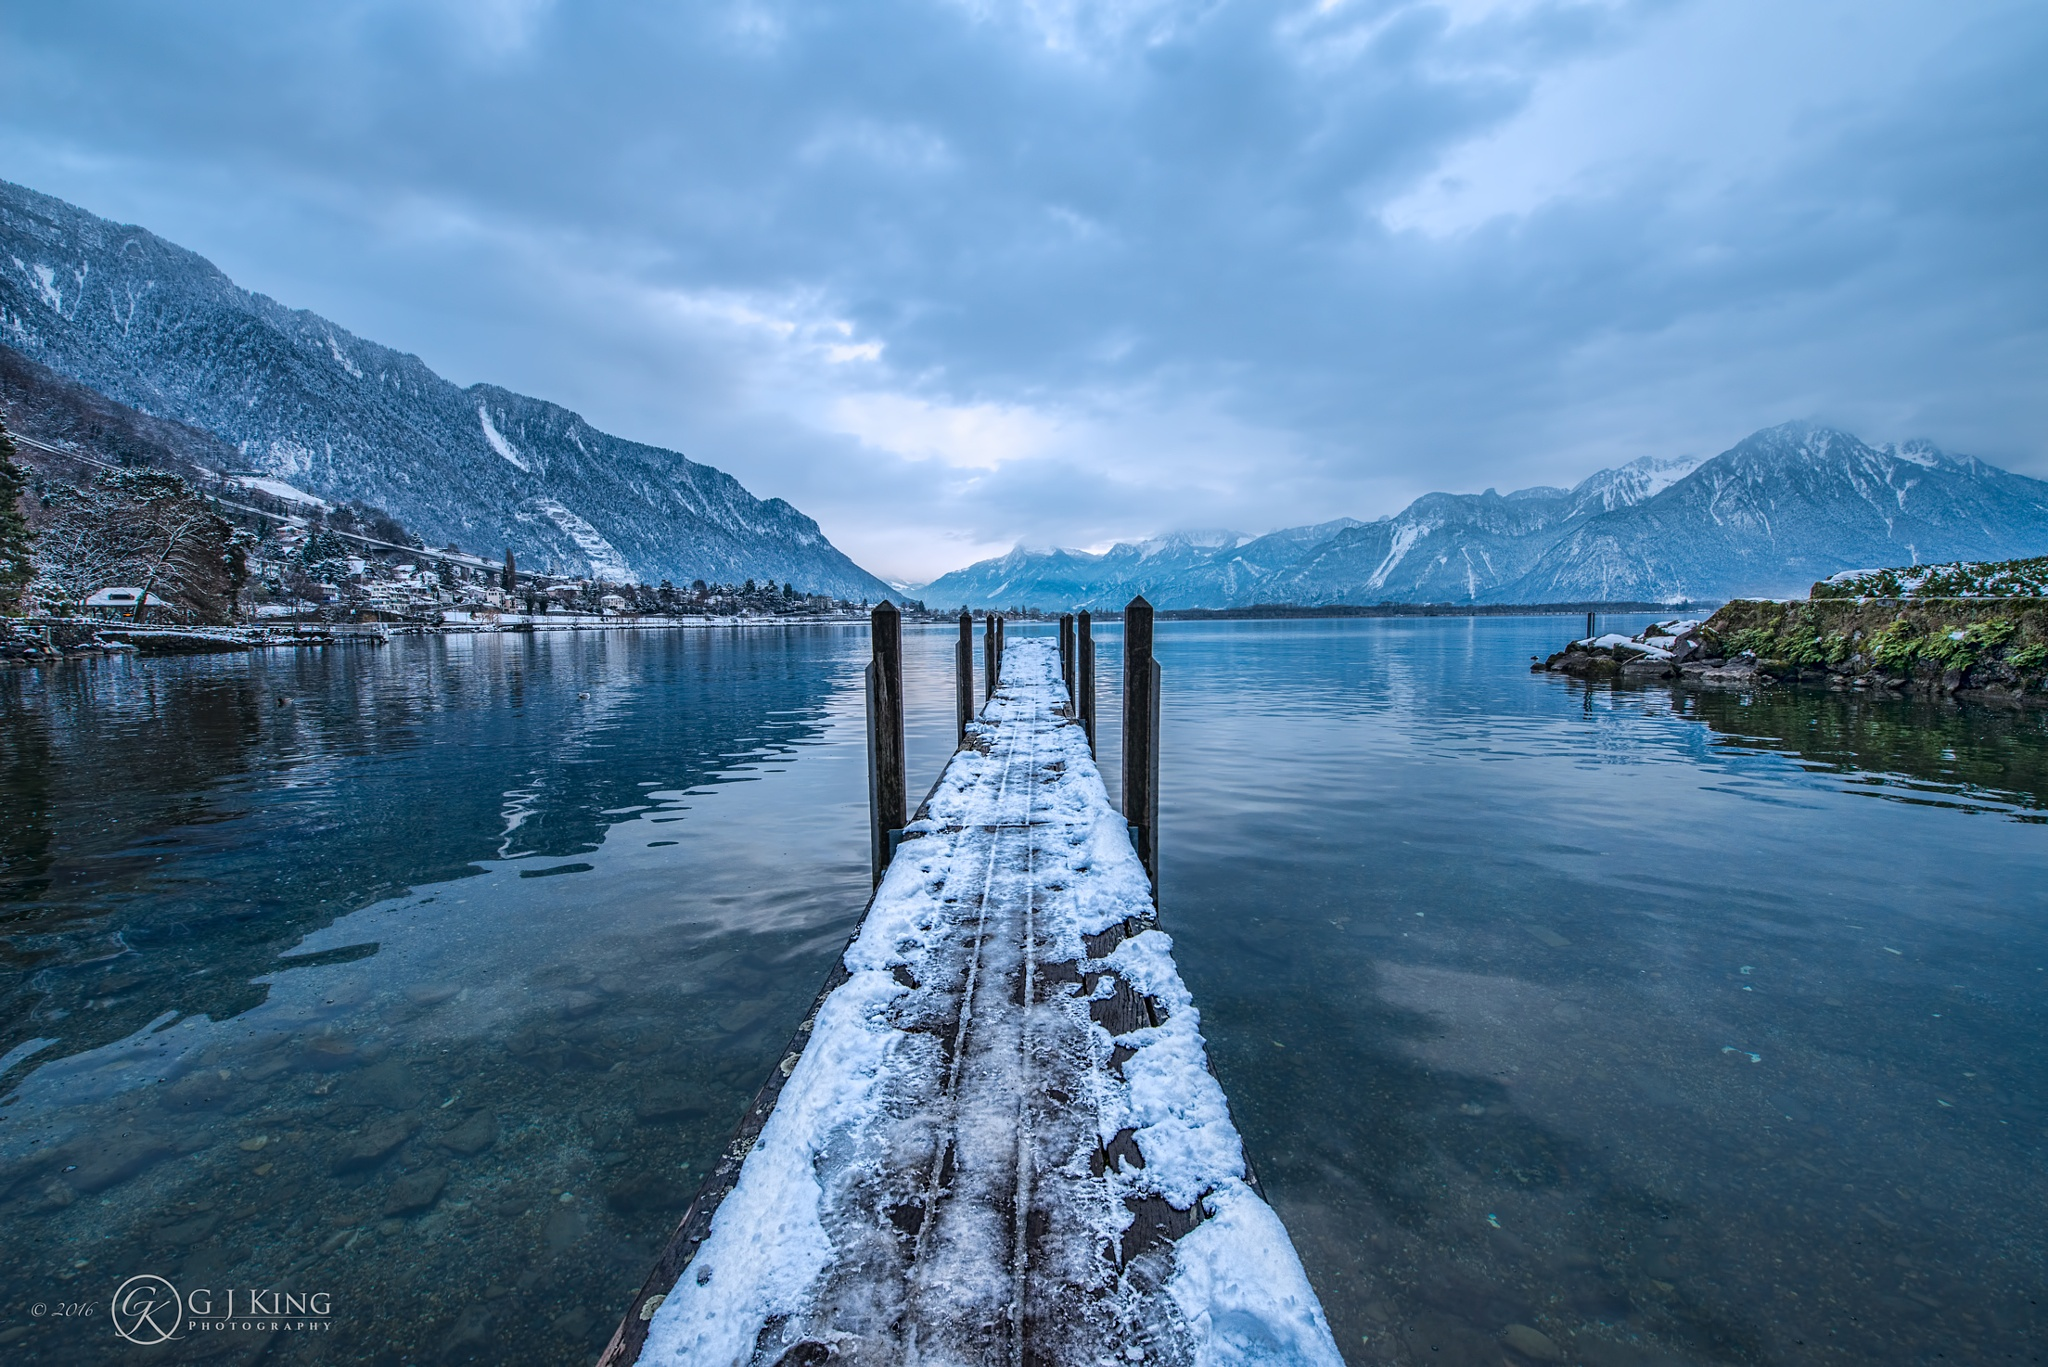 Montreux Jetty by gjkingphotography